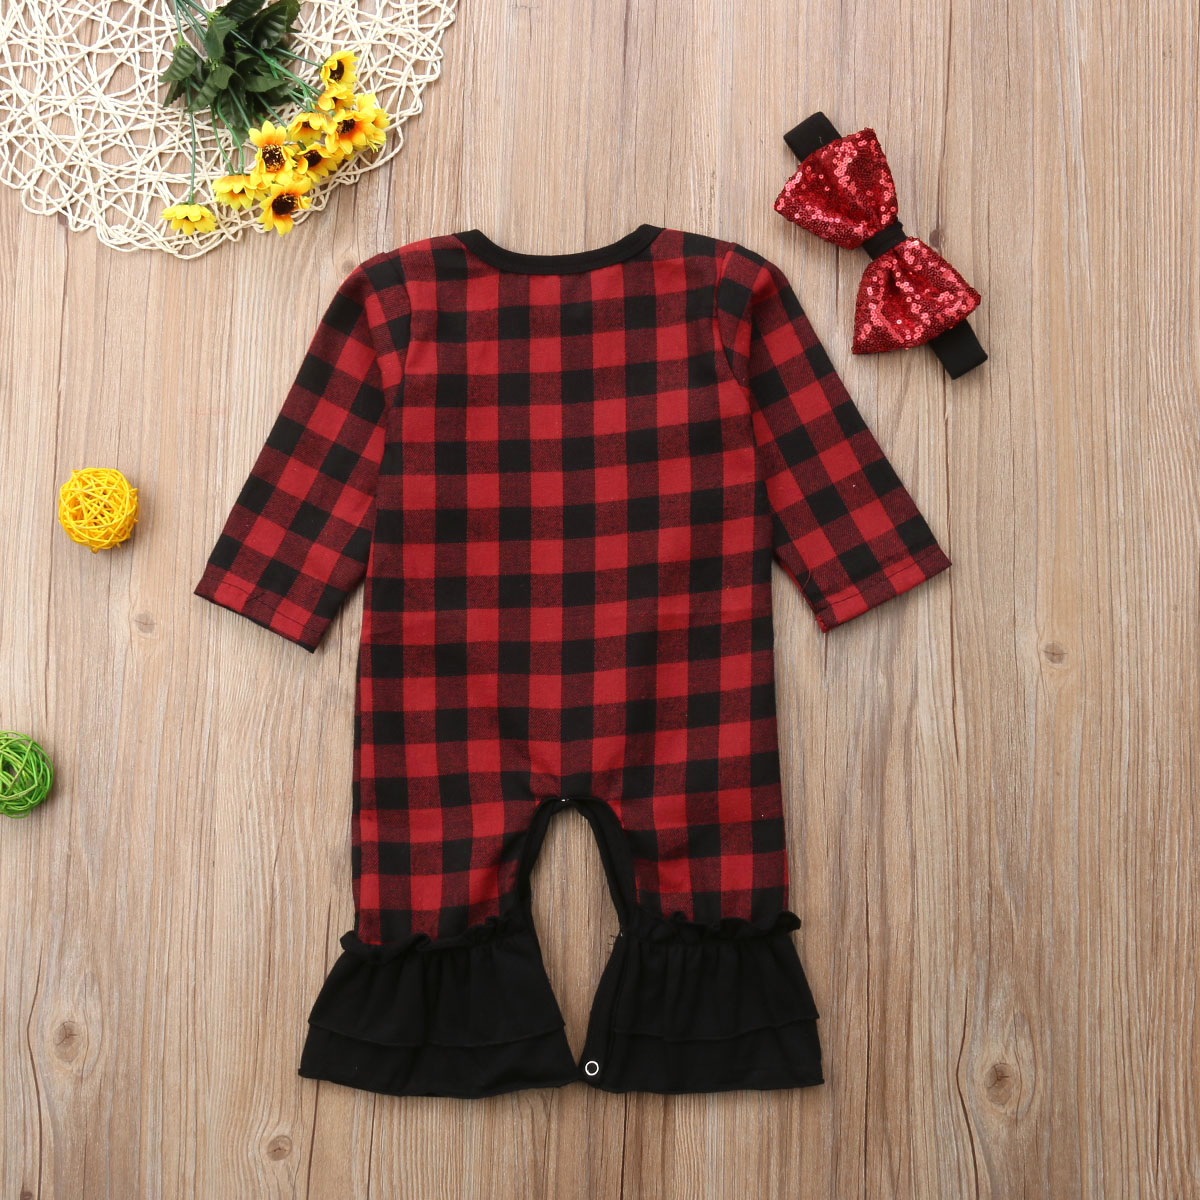 e81d9632e Christmas Newborn Baby Girls Red Cute Romper Cotton Black Red Checks  Jumpsuit Outfit Fall Clothes